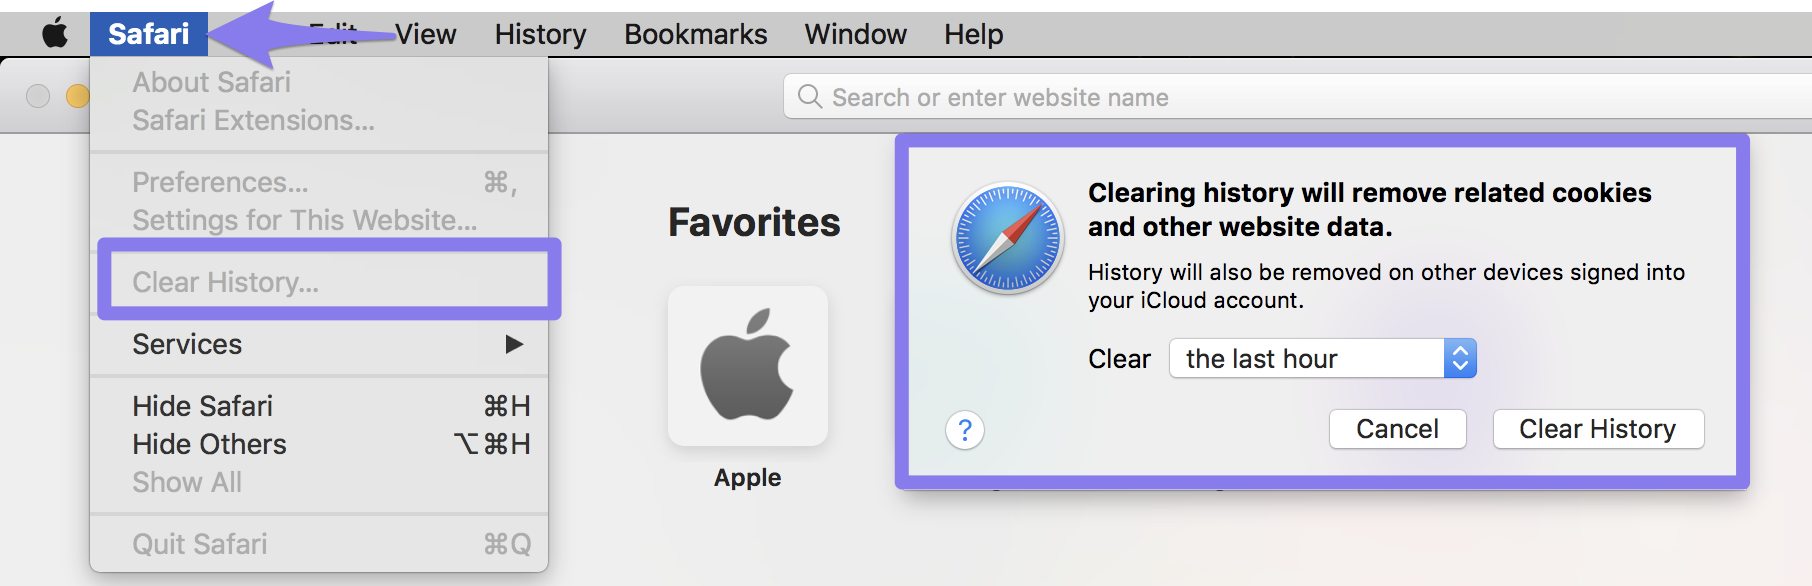 Clear browsing data menu in Safari 8 and later.